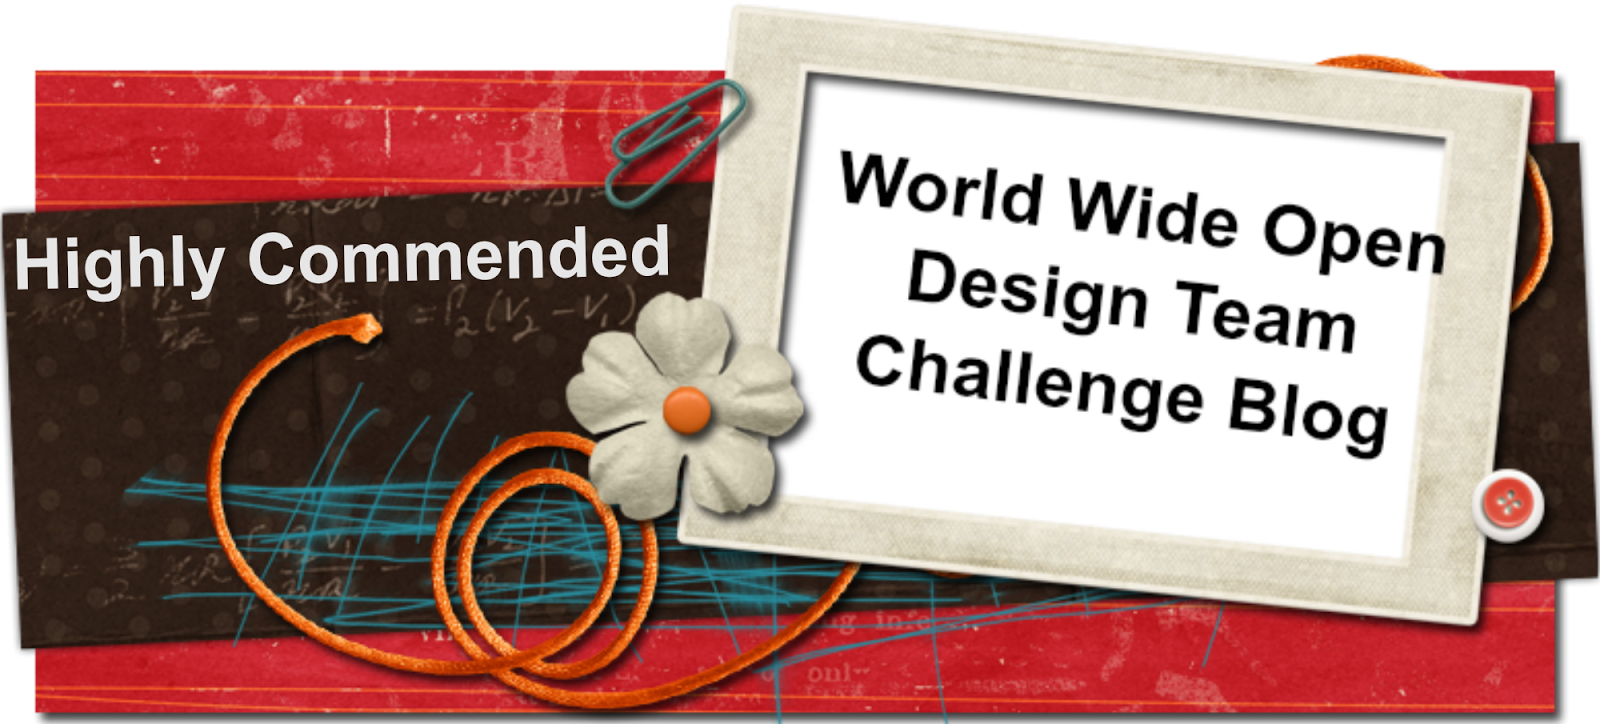 worldwideopendesignteamchallenge